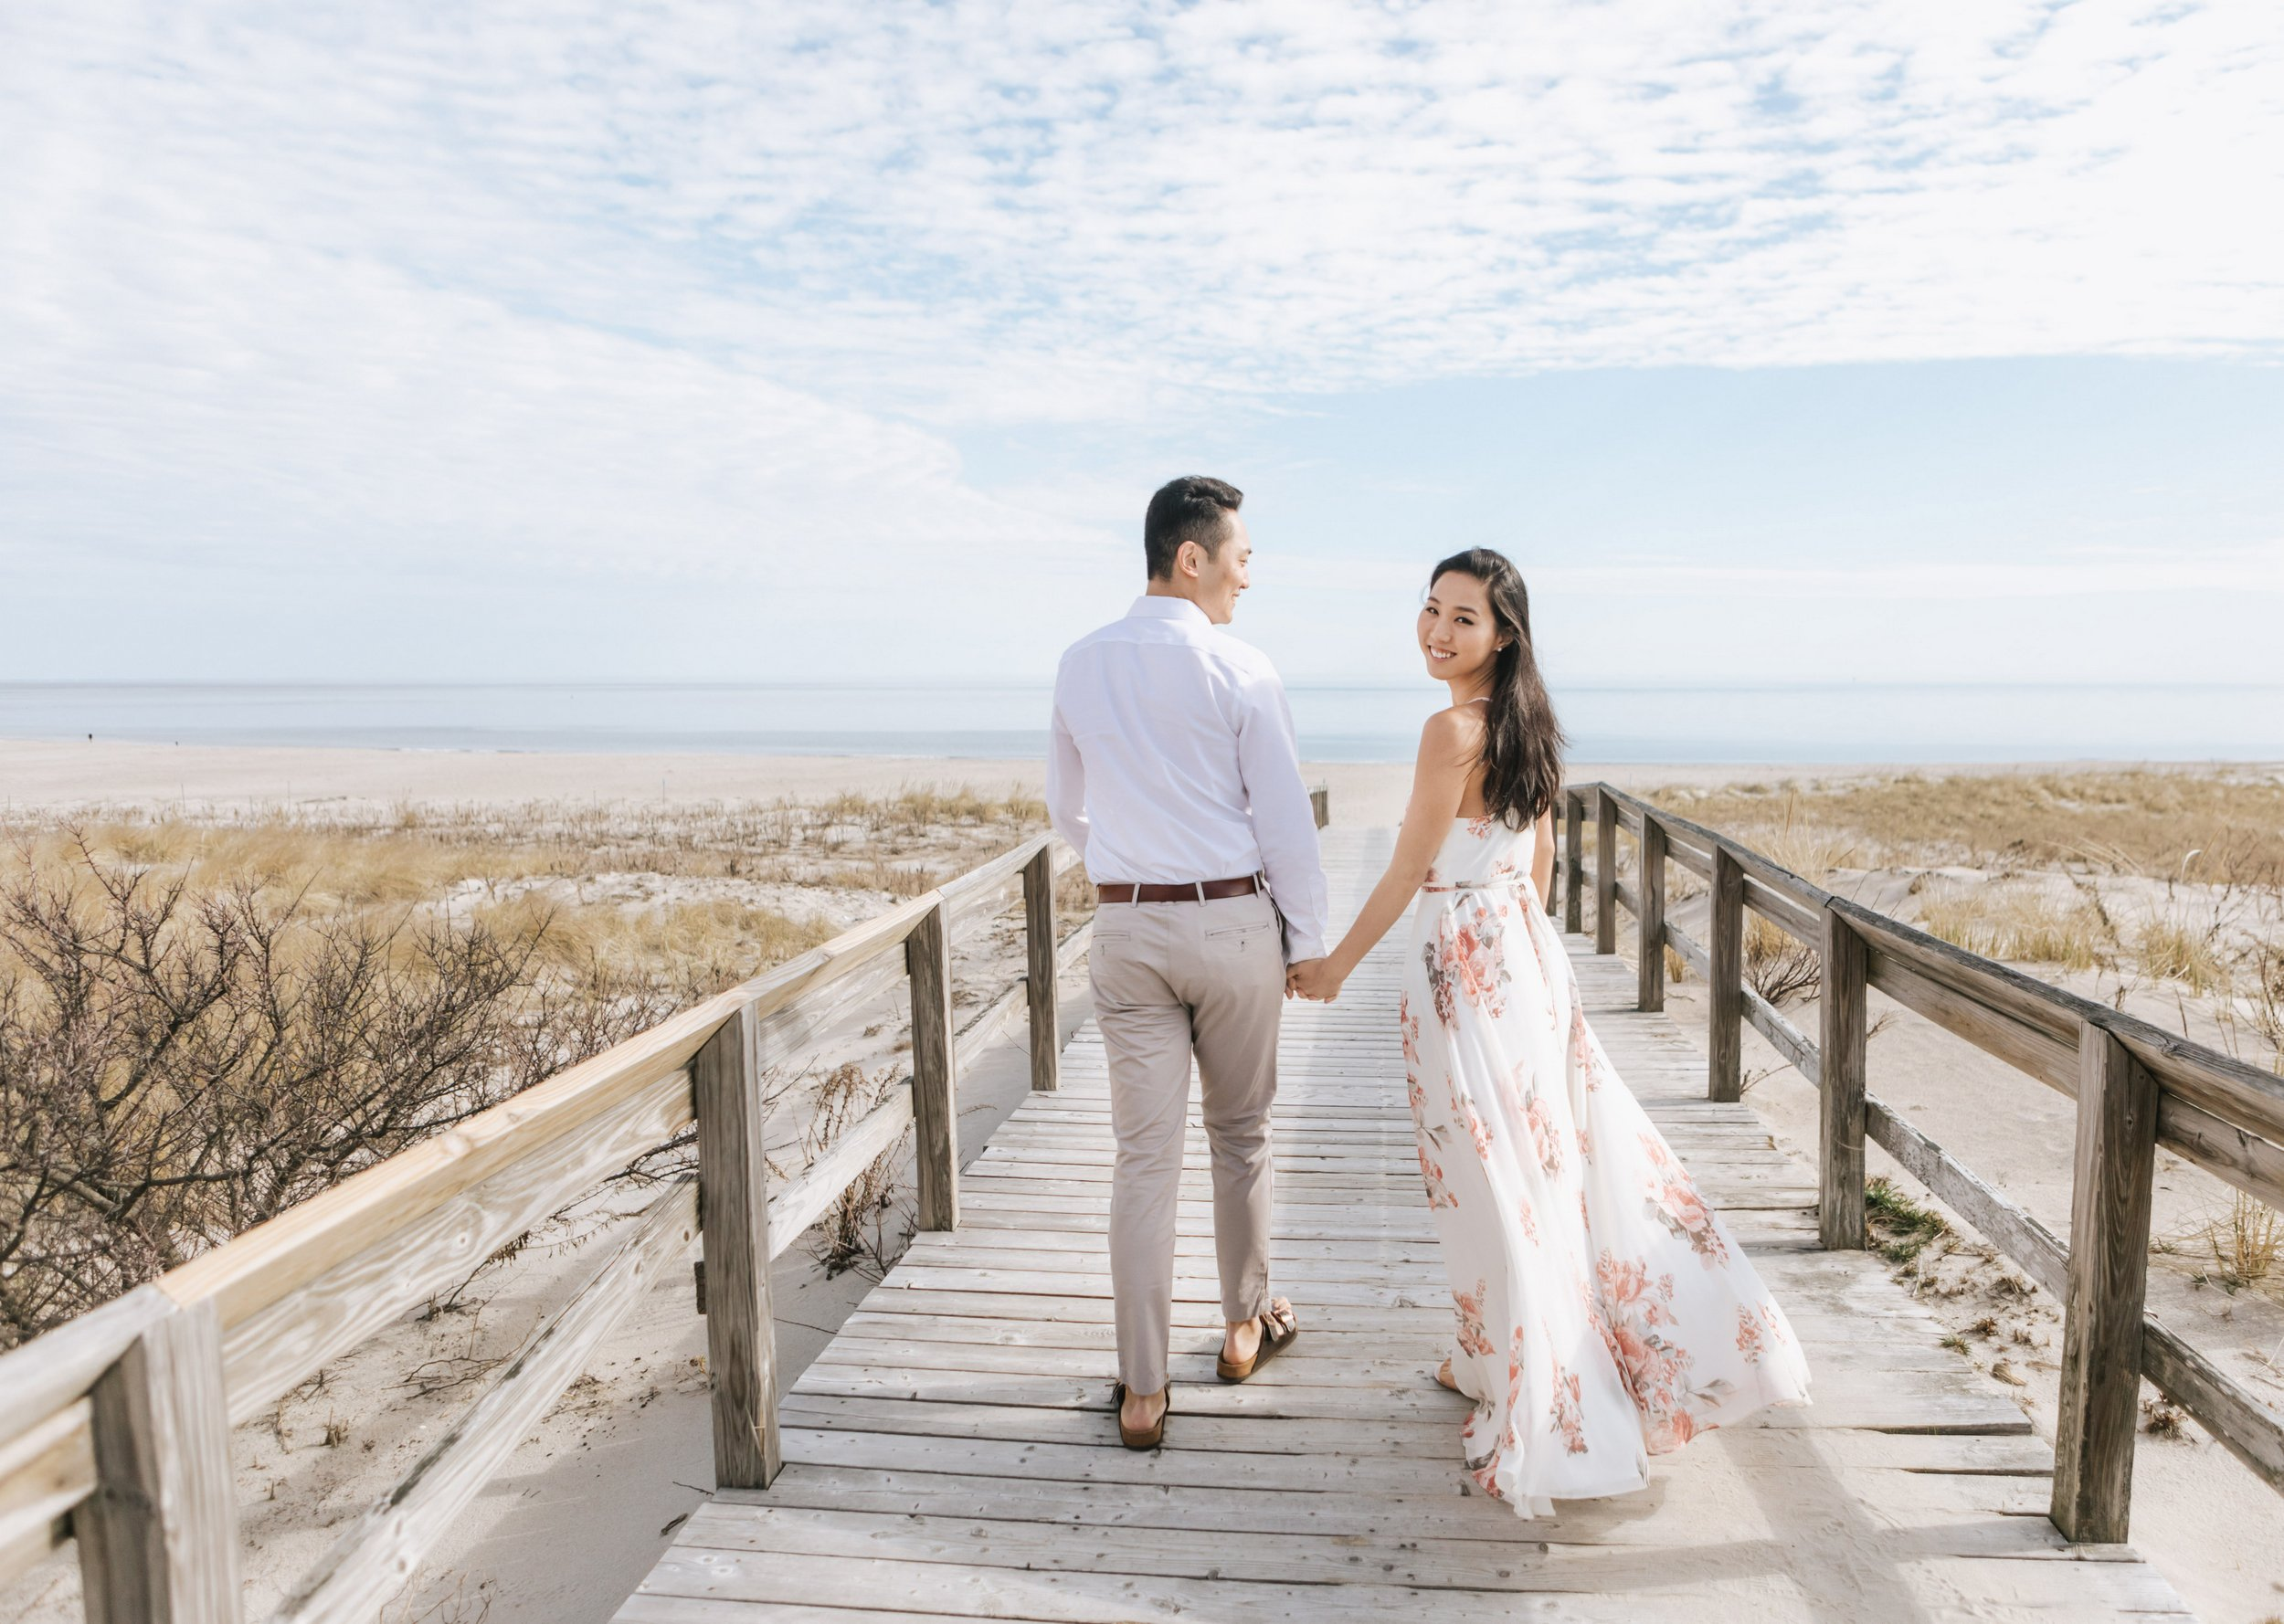 Crane-Beach-Engagement-Wedding-Lena-Mirisola-1.JPG